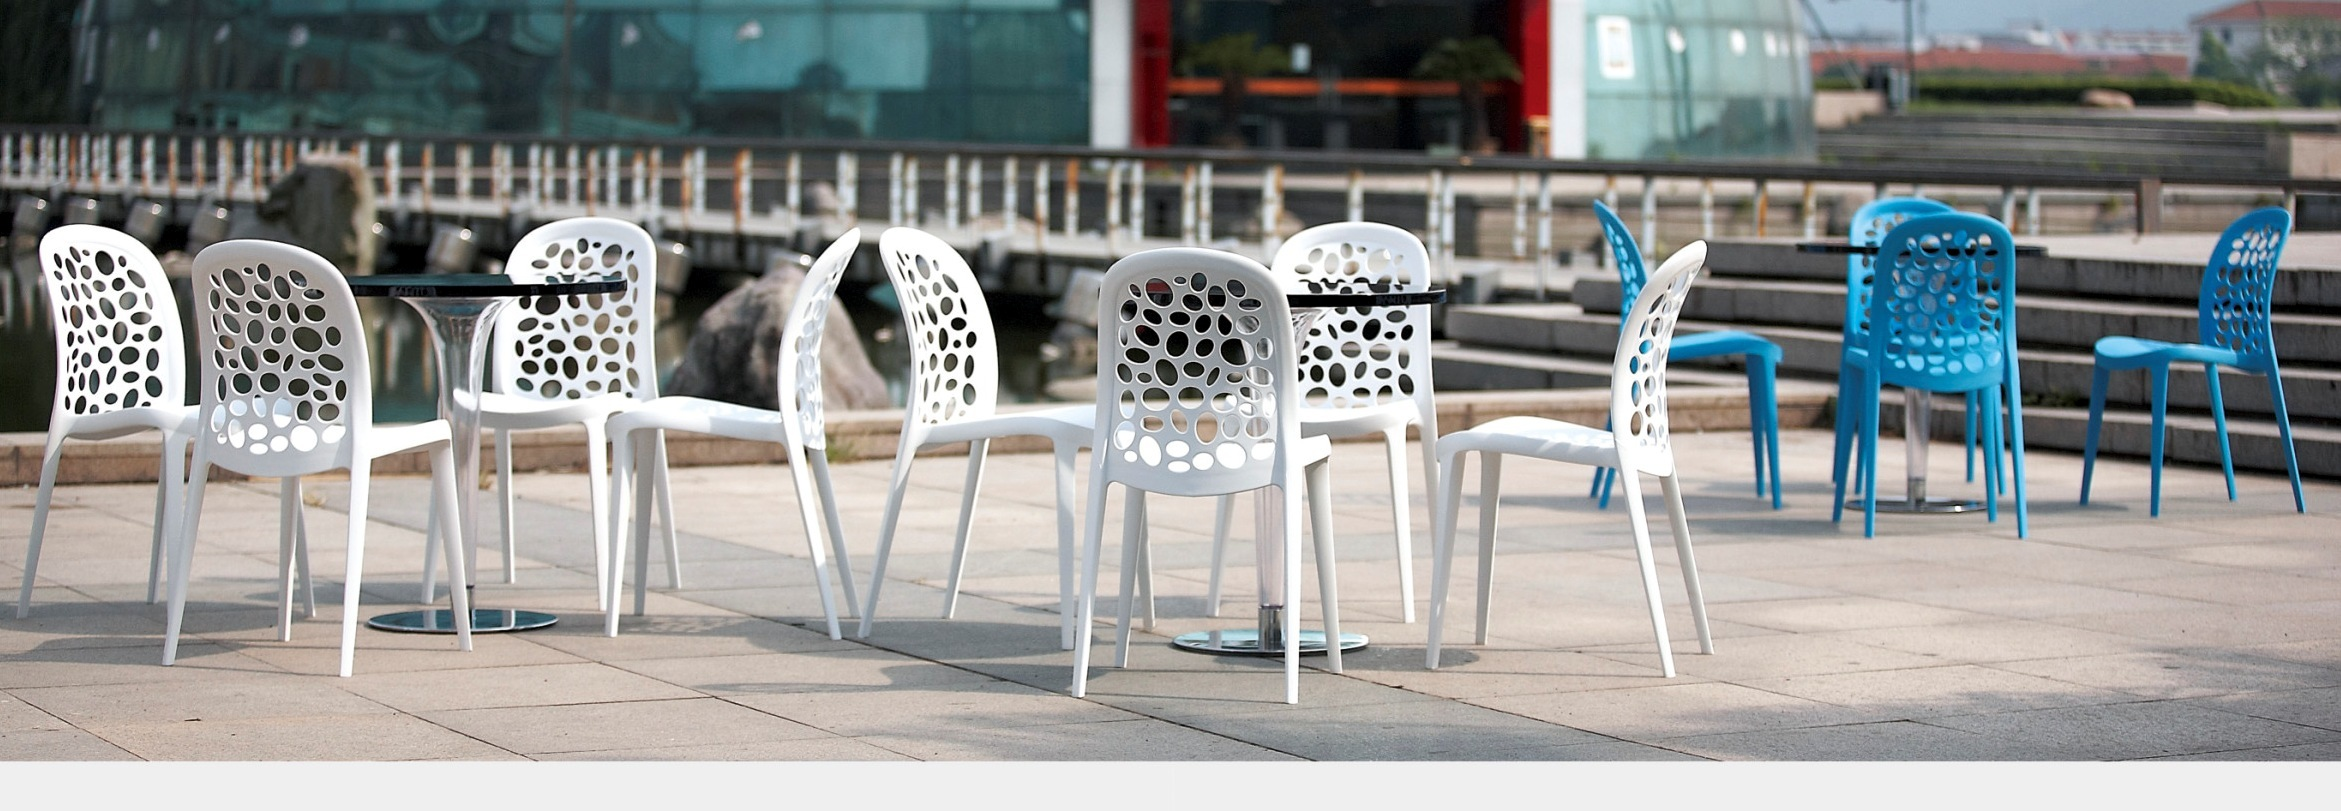 air-chair-outdoor.jpg